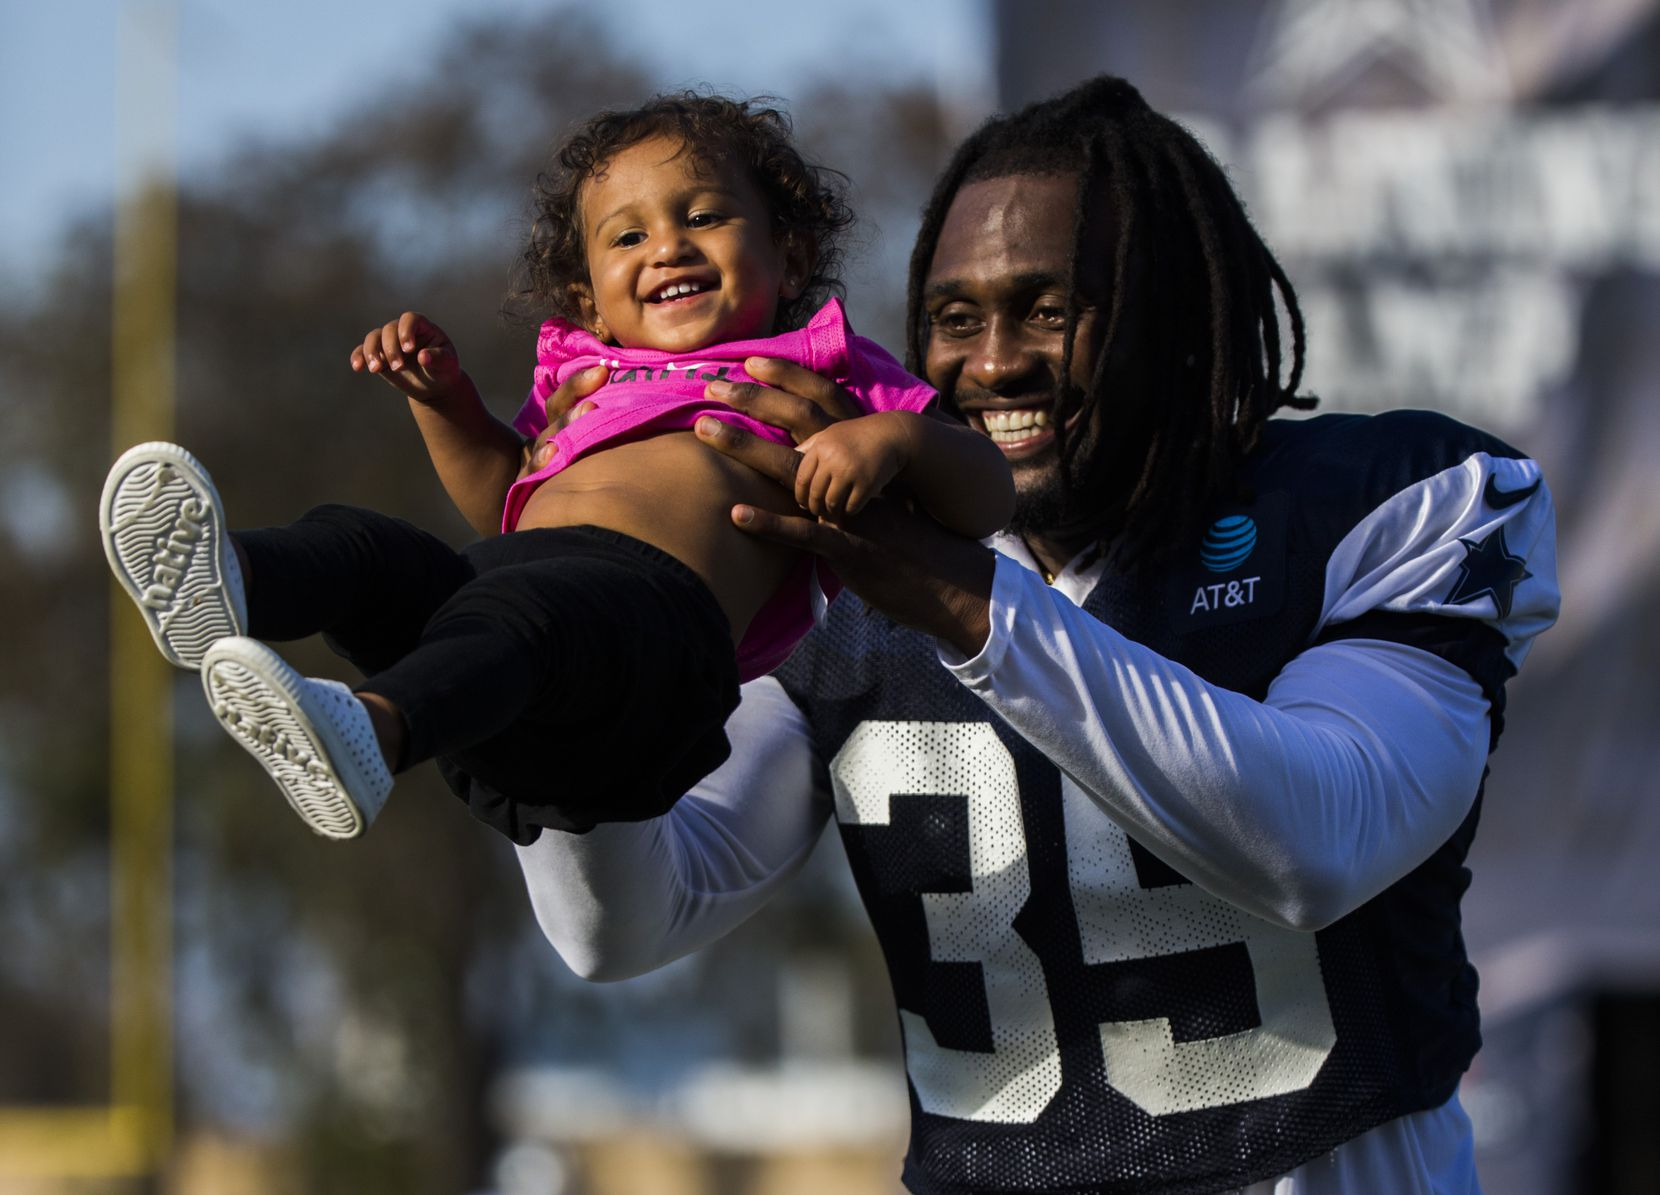 Dallas Cowboys free safety Kavon Frazier (35) plays with his daughter, Kali Frazier, 15 months, after an afternoon practice at training camp in Oxnard, Calif., on July 29, 2019.